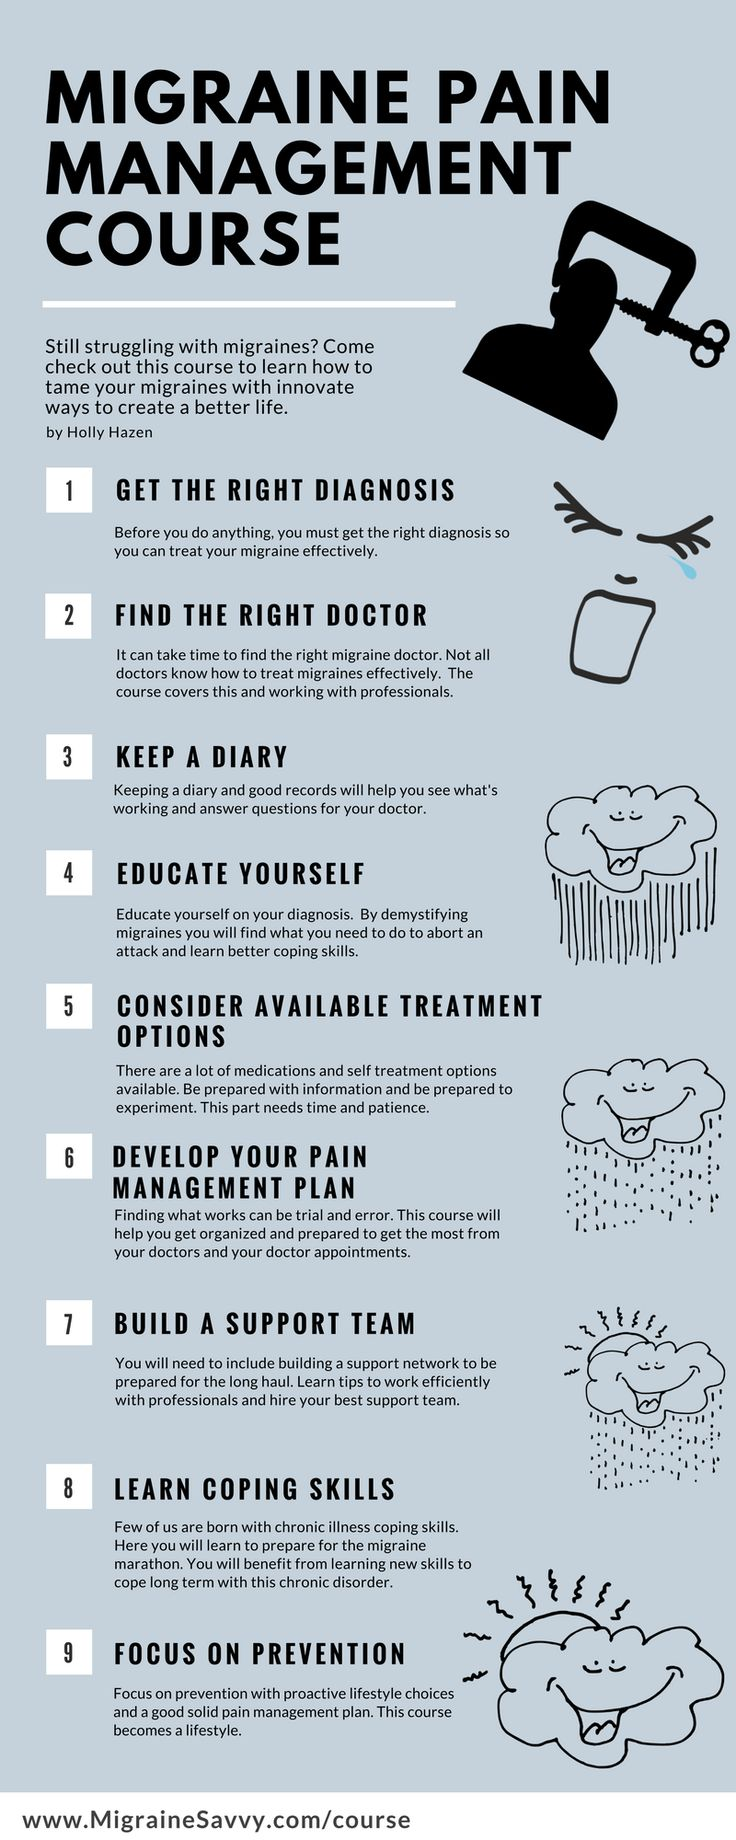 There are 5 modules, each of which is broken down into several individual lessons: Demystifying Migraines, Immediate Self Treatment, Working with Professionals, Creating Your Pain Management Plan, Dealing with Setbacks, audios, videos and more.